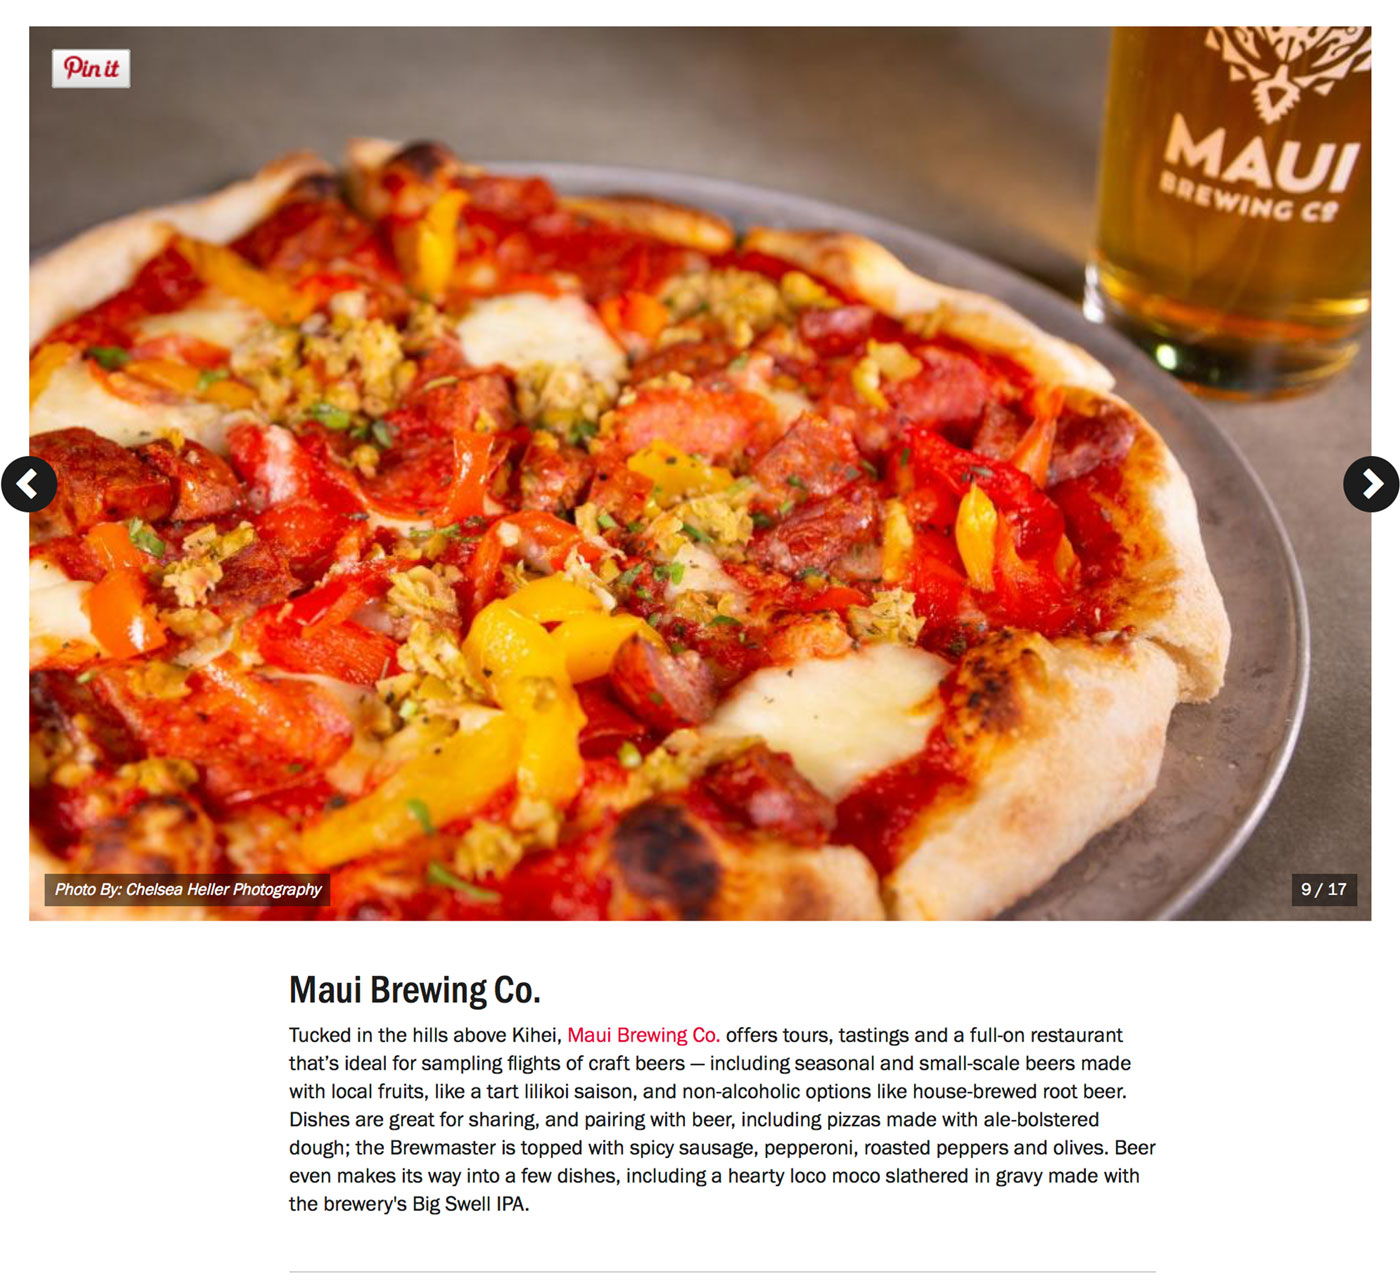 "Screenshot from Food Network's Guide to:<br><a href=""https://www.foodnetwork.com/restaurants/photos/restaurant-guide-maui"" target=""_blank"" rel=""noopener noreferrer"">""The Best Restaurants on Maui""</a> - Maui Brewing Co.</br>"